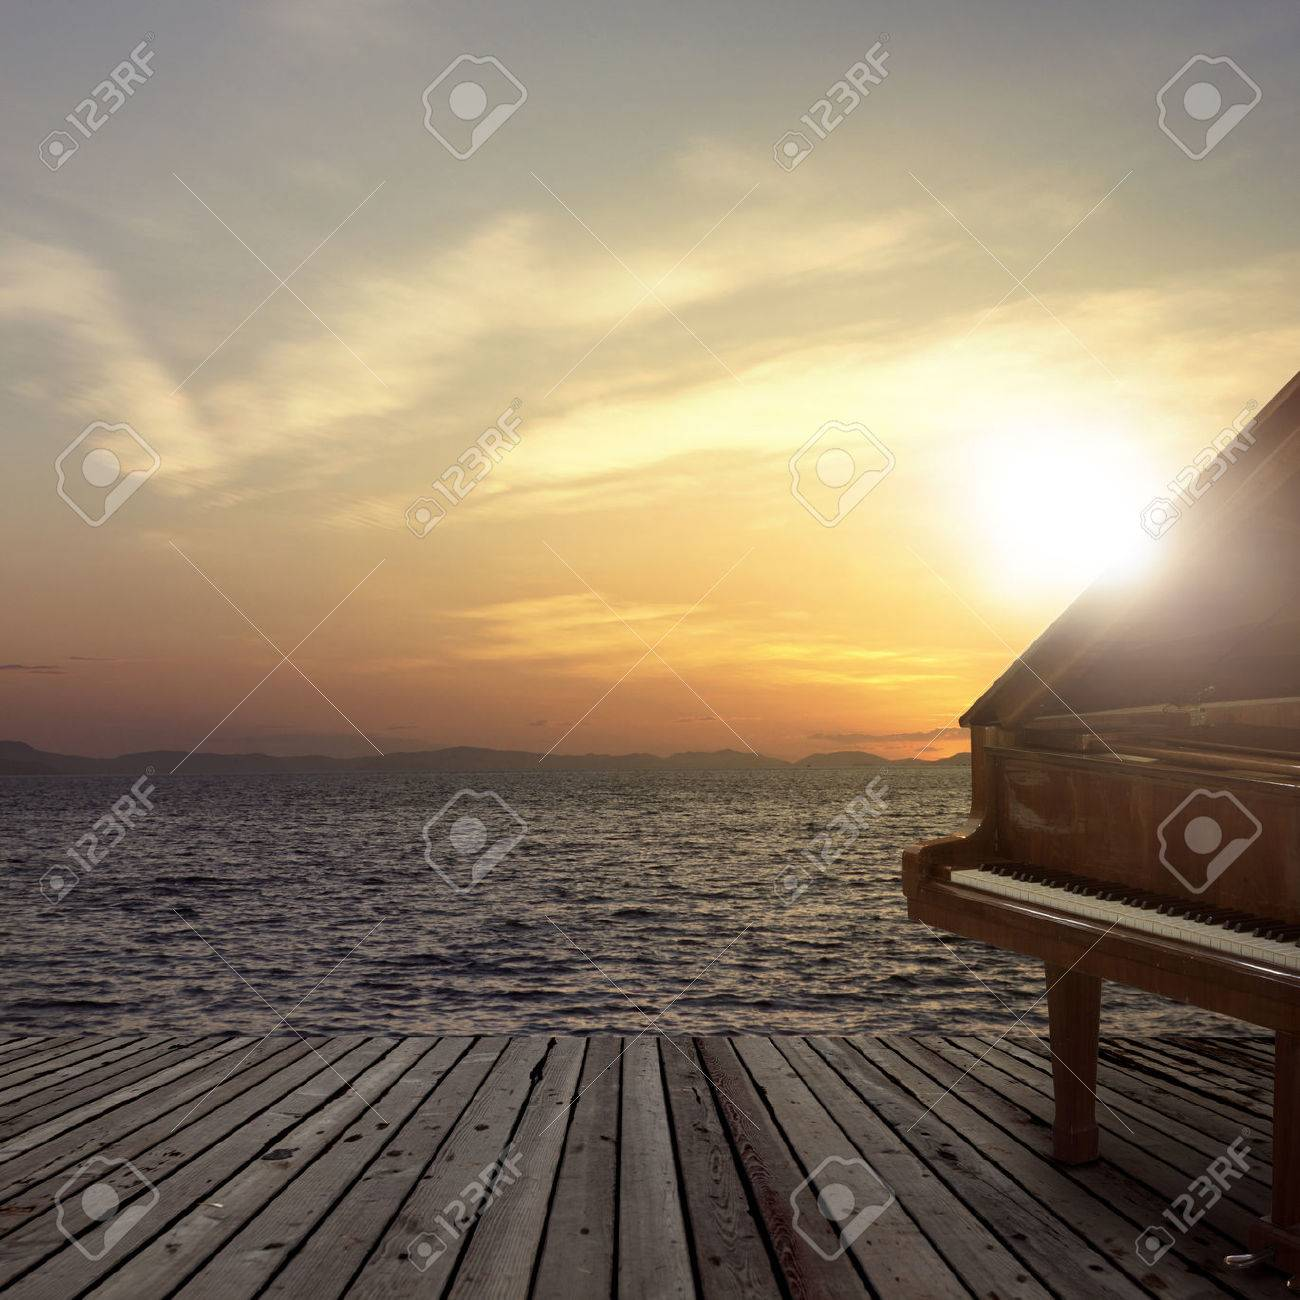 Piano outside shot at sea side during sunset - 63675098